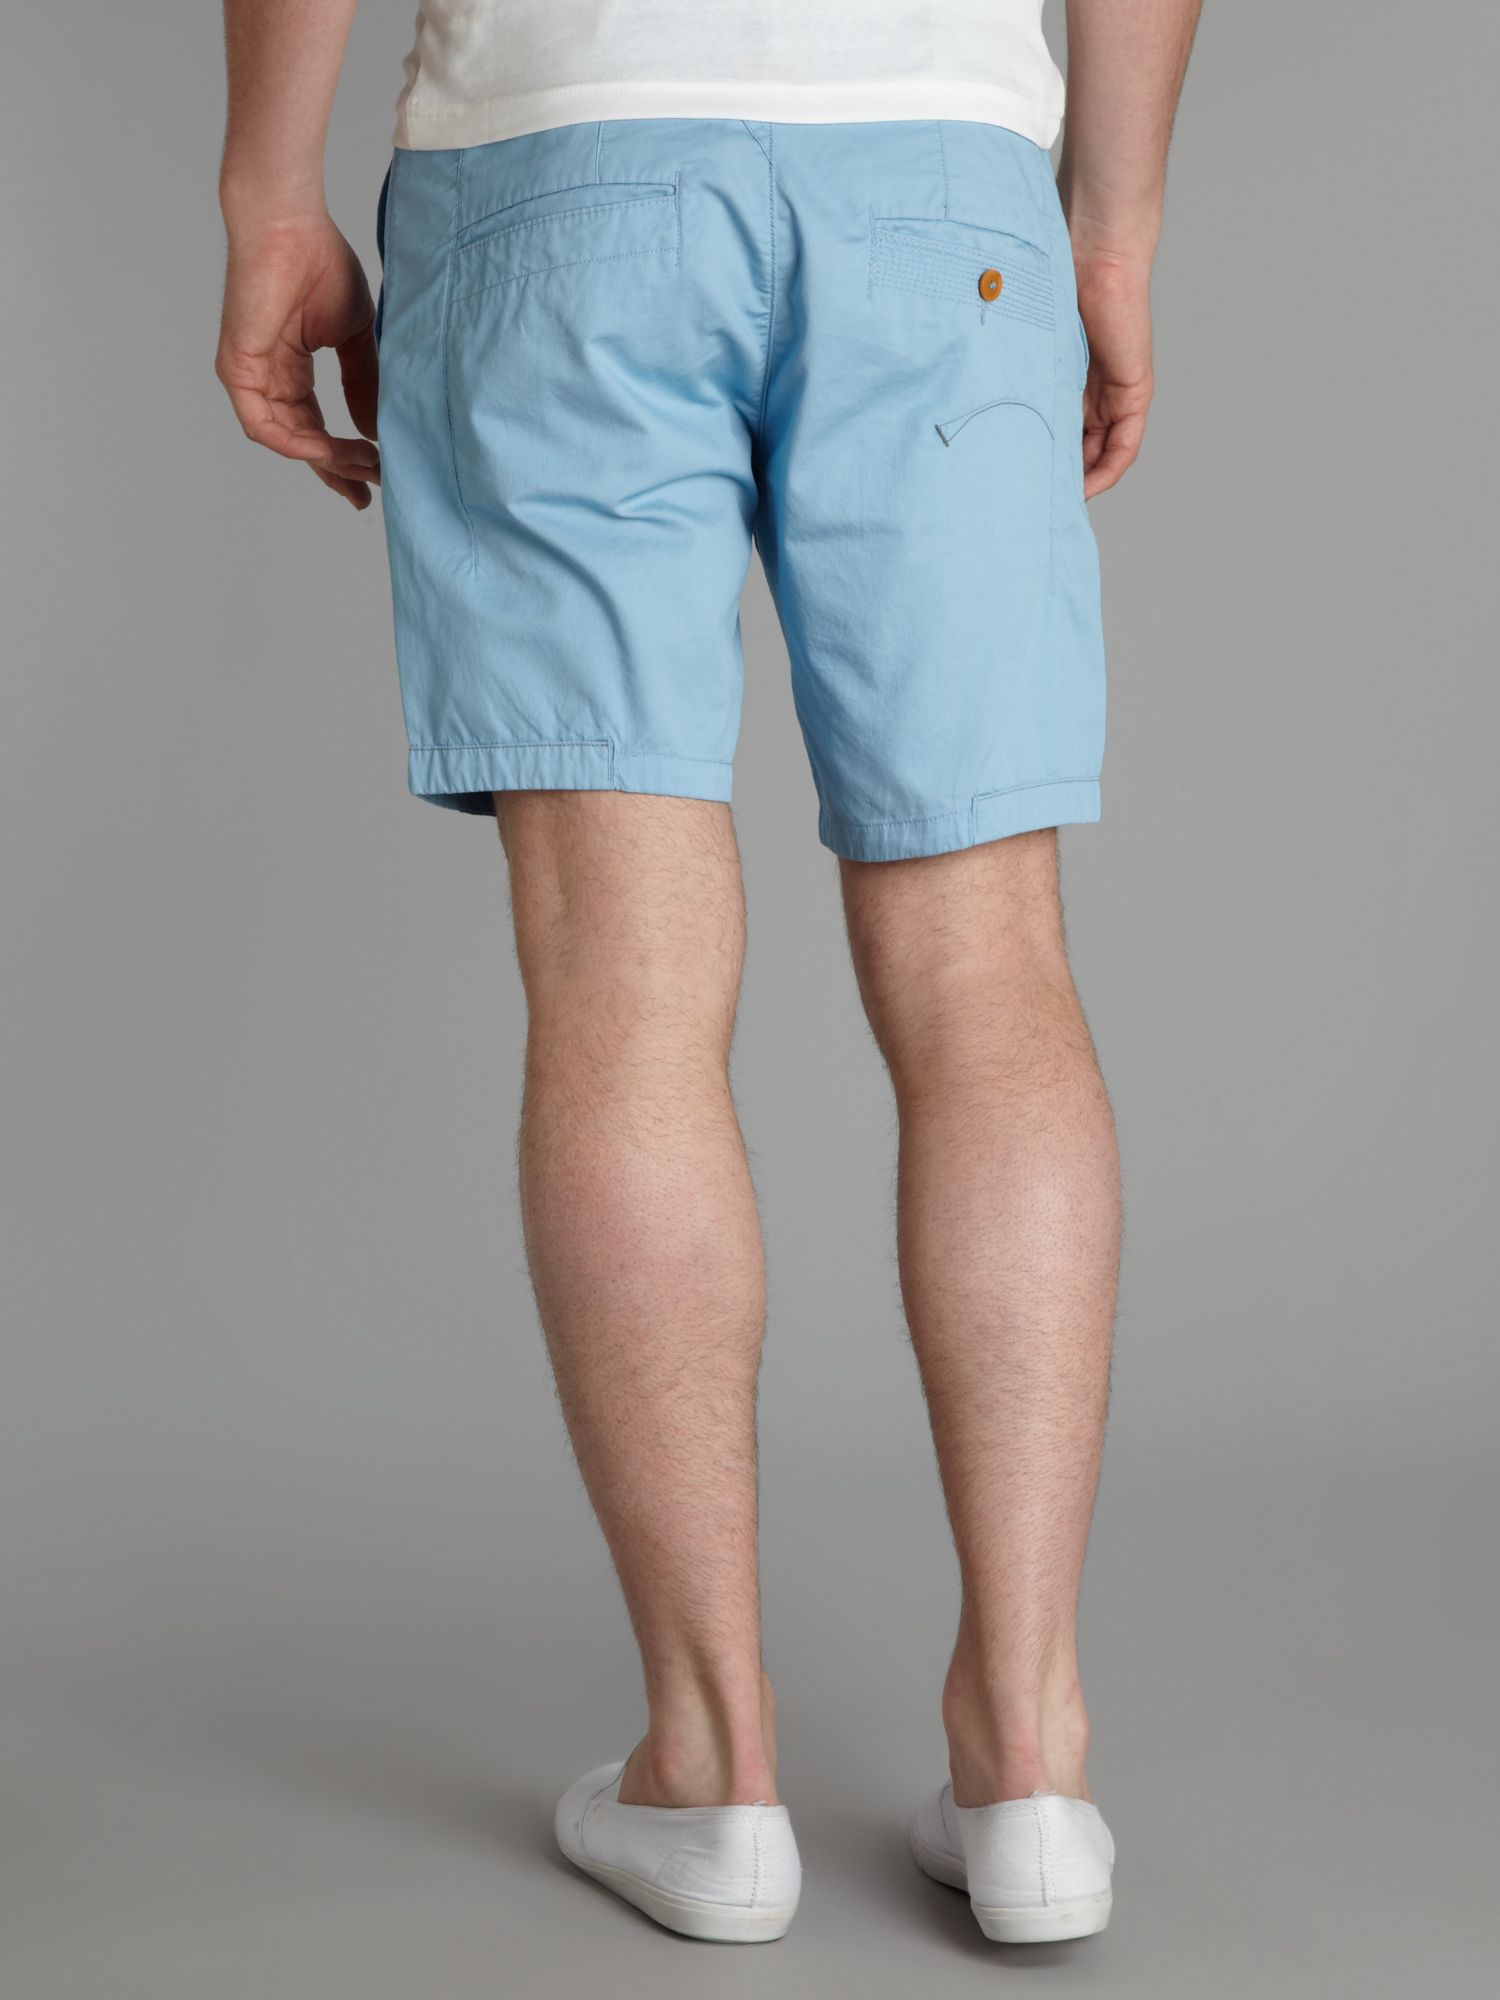 Baby Blue Chino Shorts - The Else